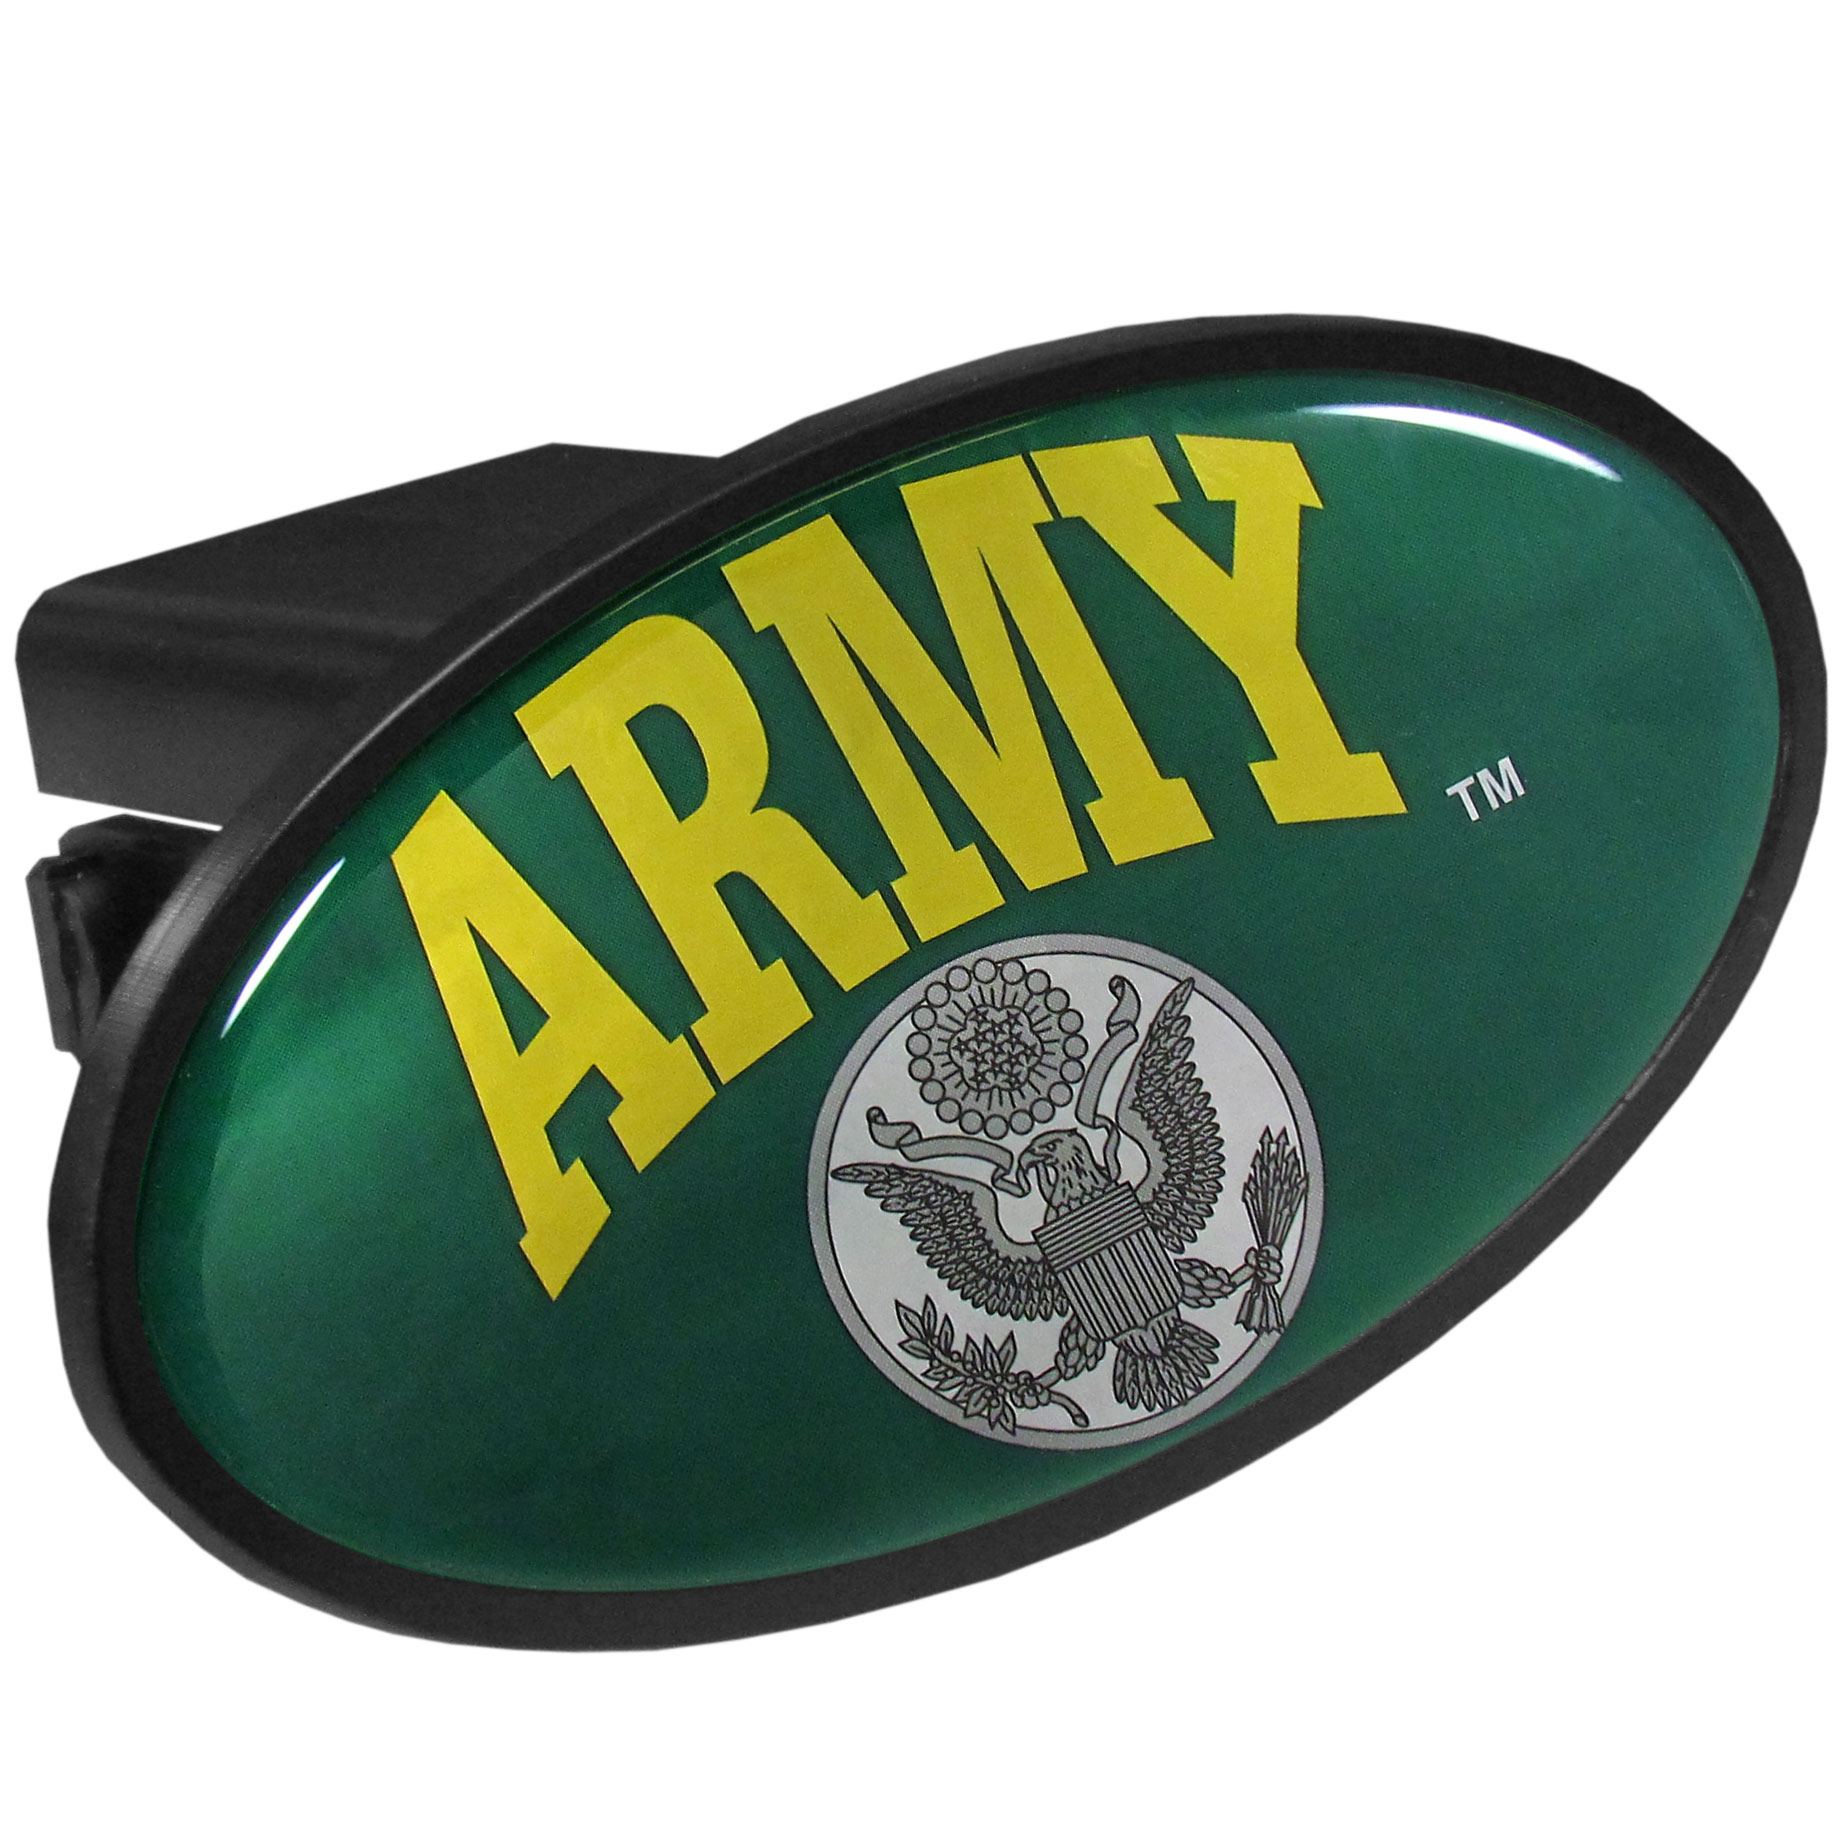 Army Plastic Hitch - Strong plastic hitch cover that includes hitch pin and features a school logo dome. Fits class III receivers.